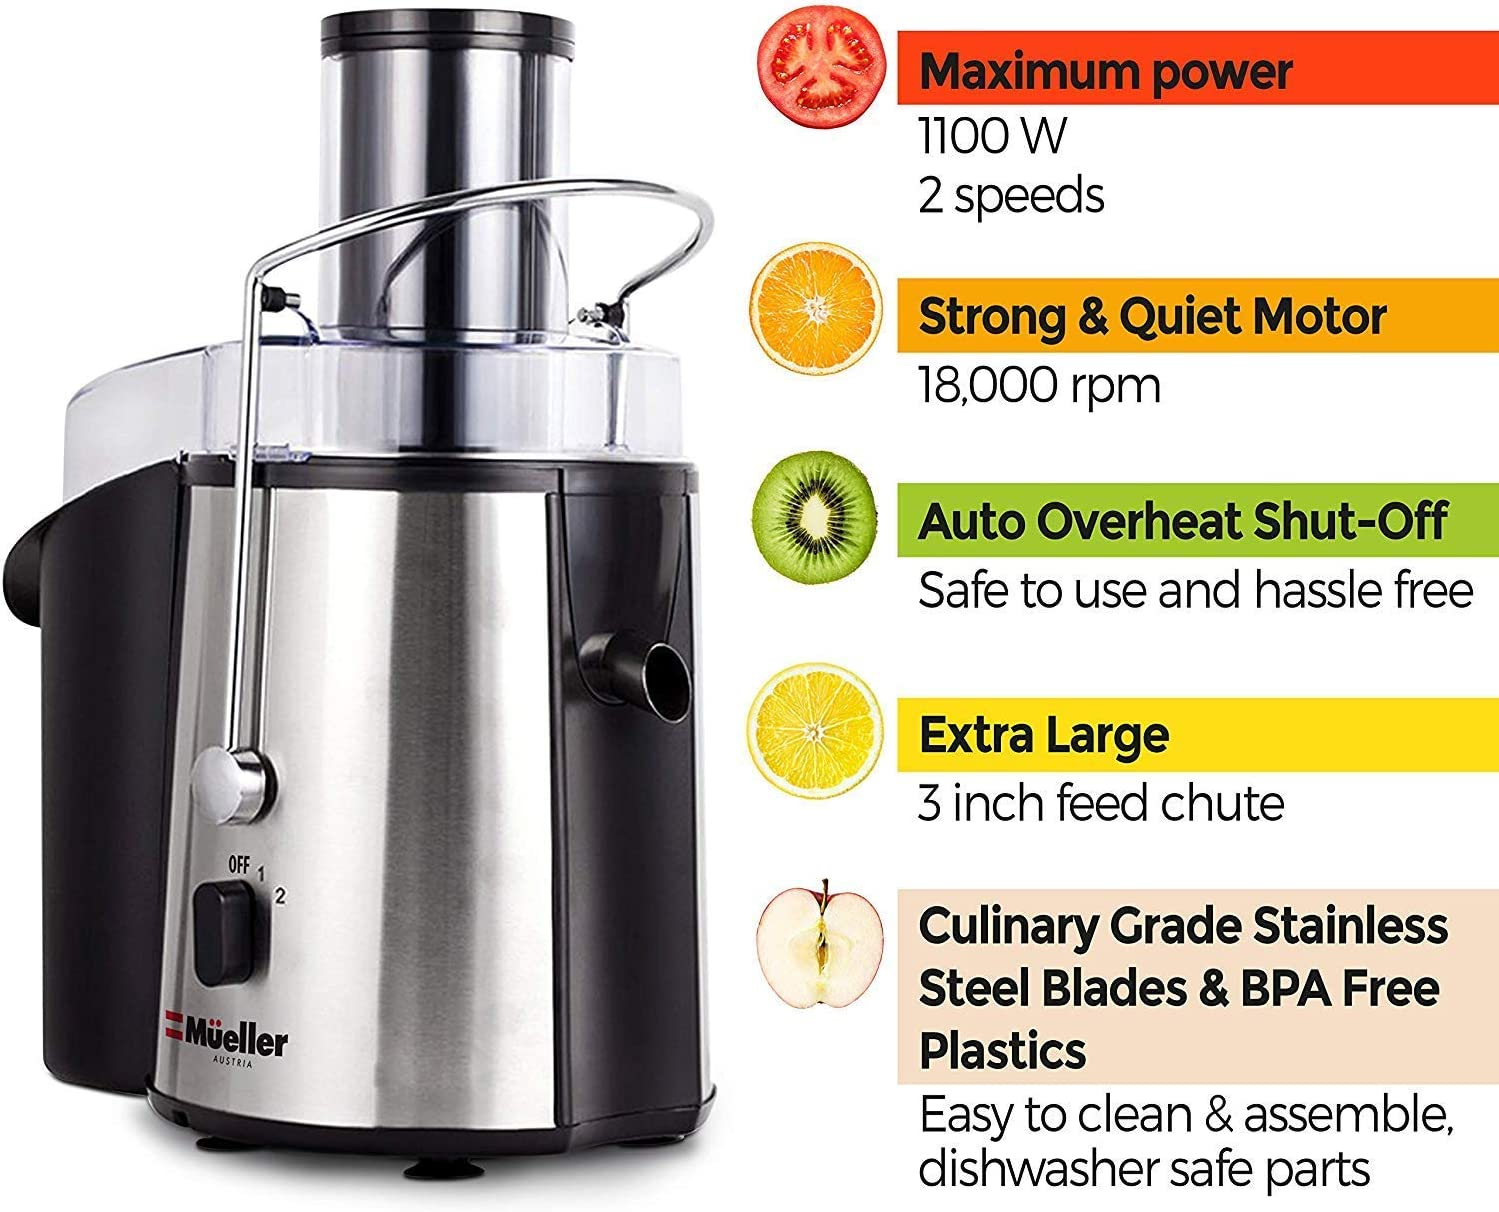 718Tq4x OtL. AC SL1500 The Best Juicers for Celery 2021 - Review & Buyer's Guide